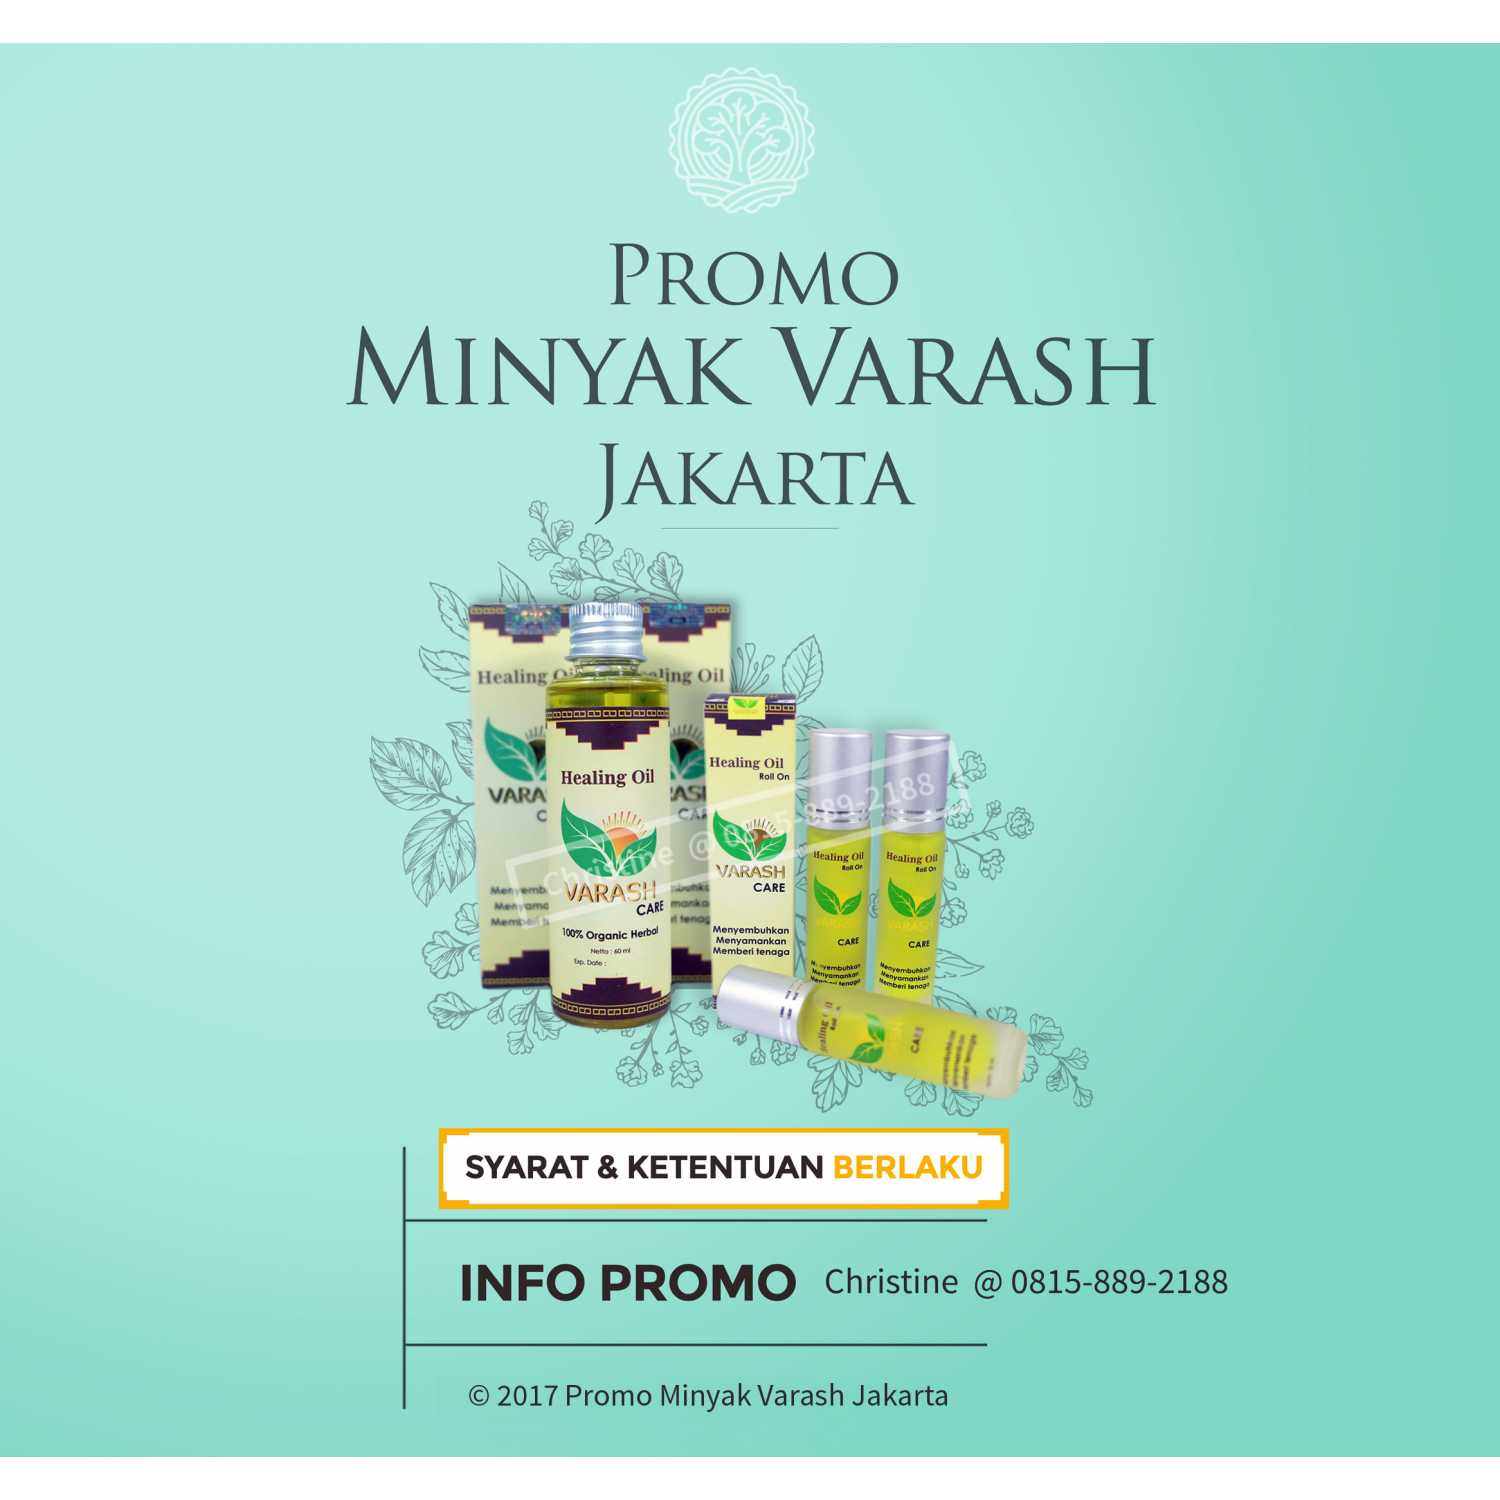 Minyak Varash Jakarta Classic Angin Herbal Care Roll On